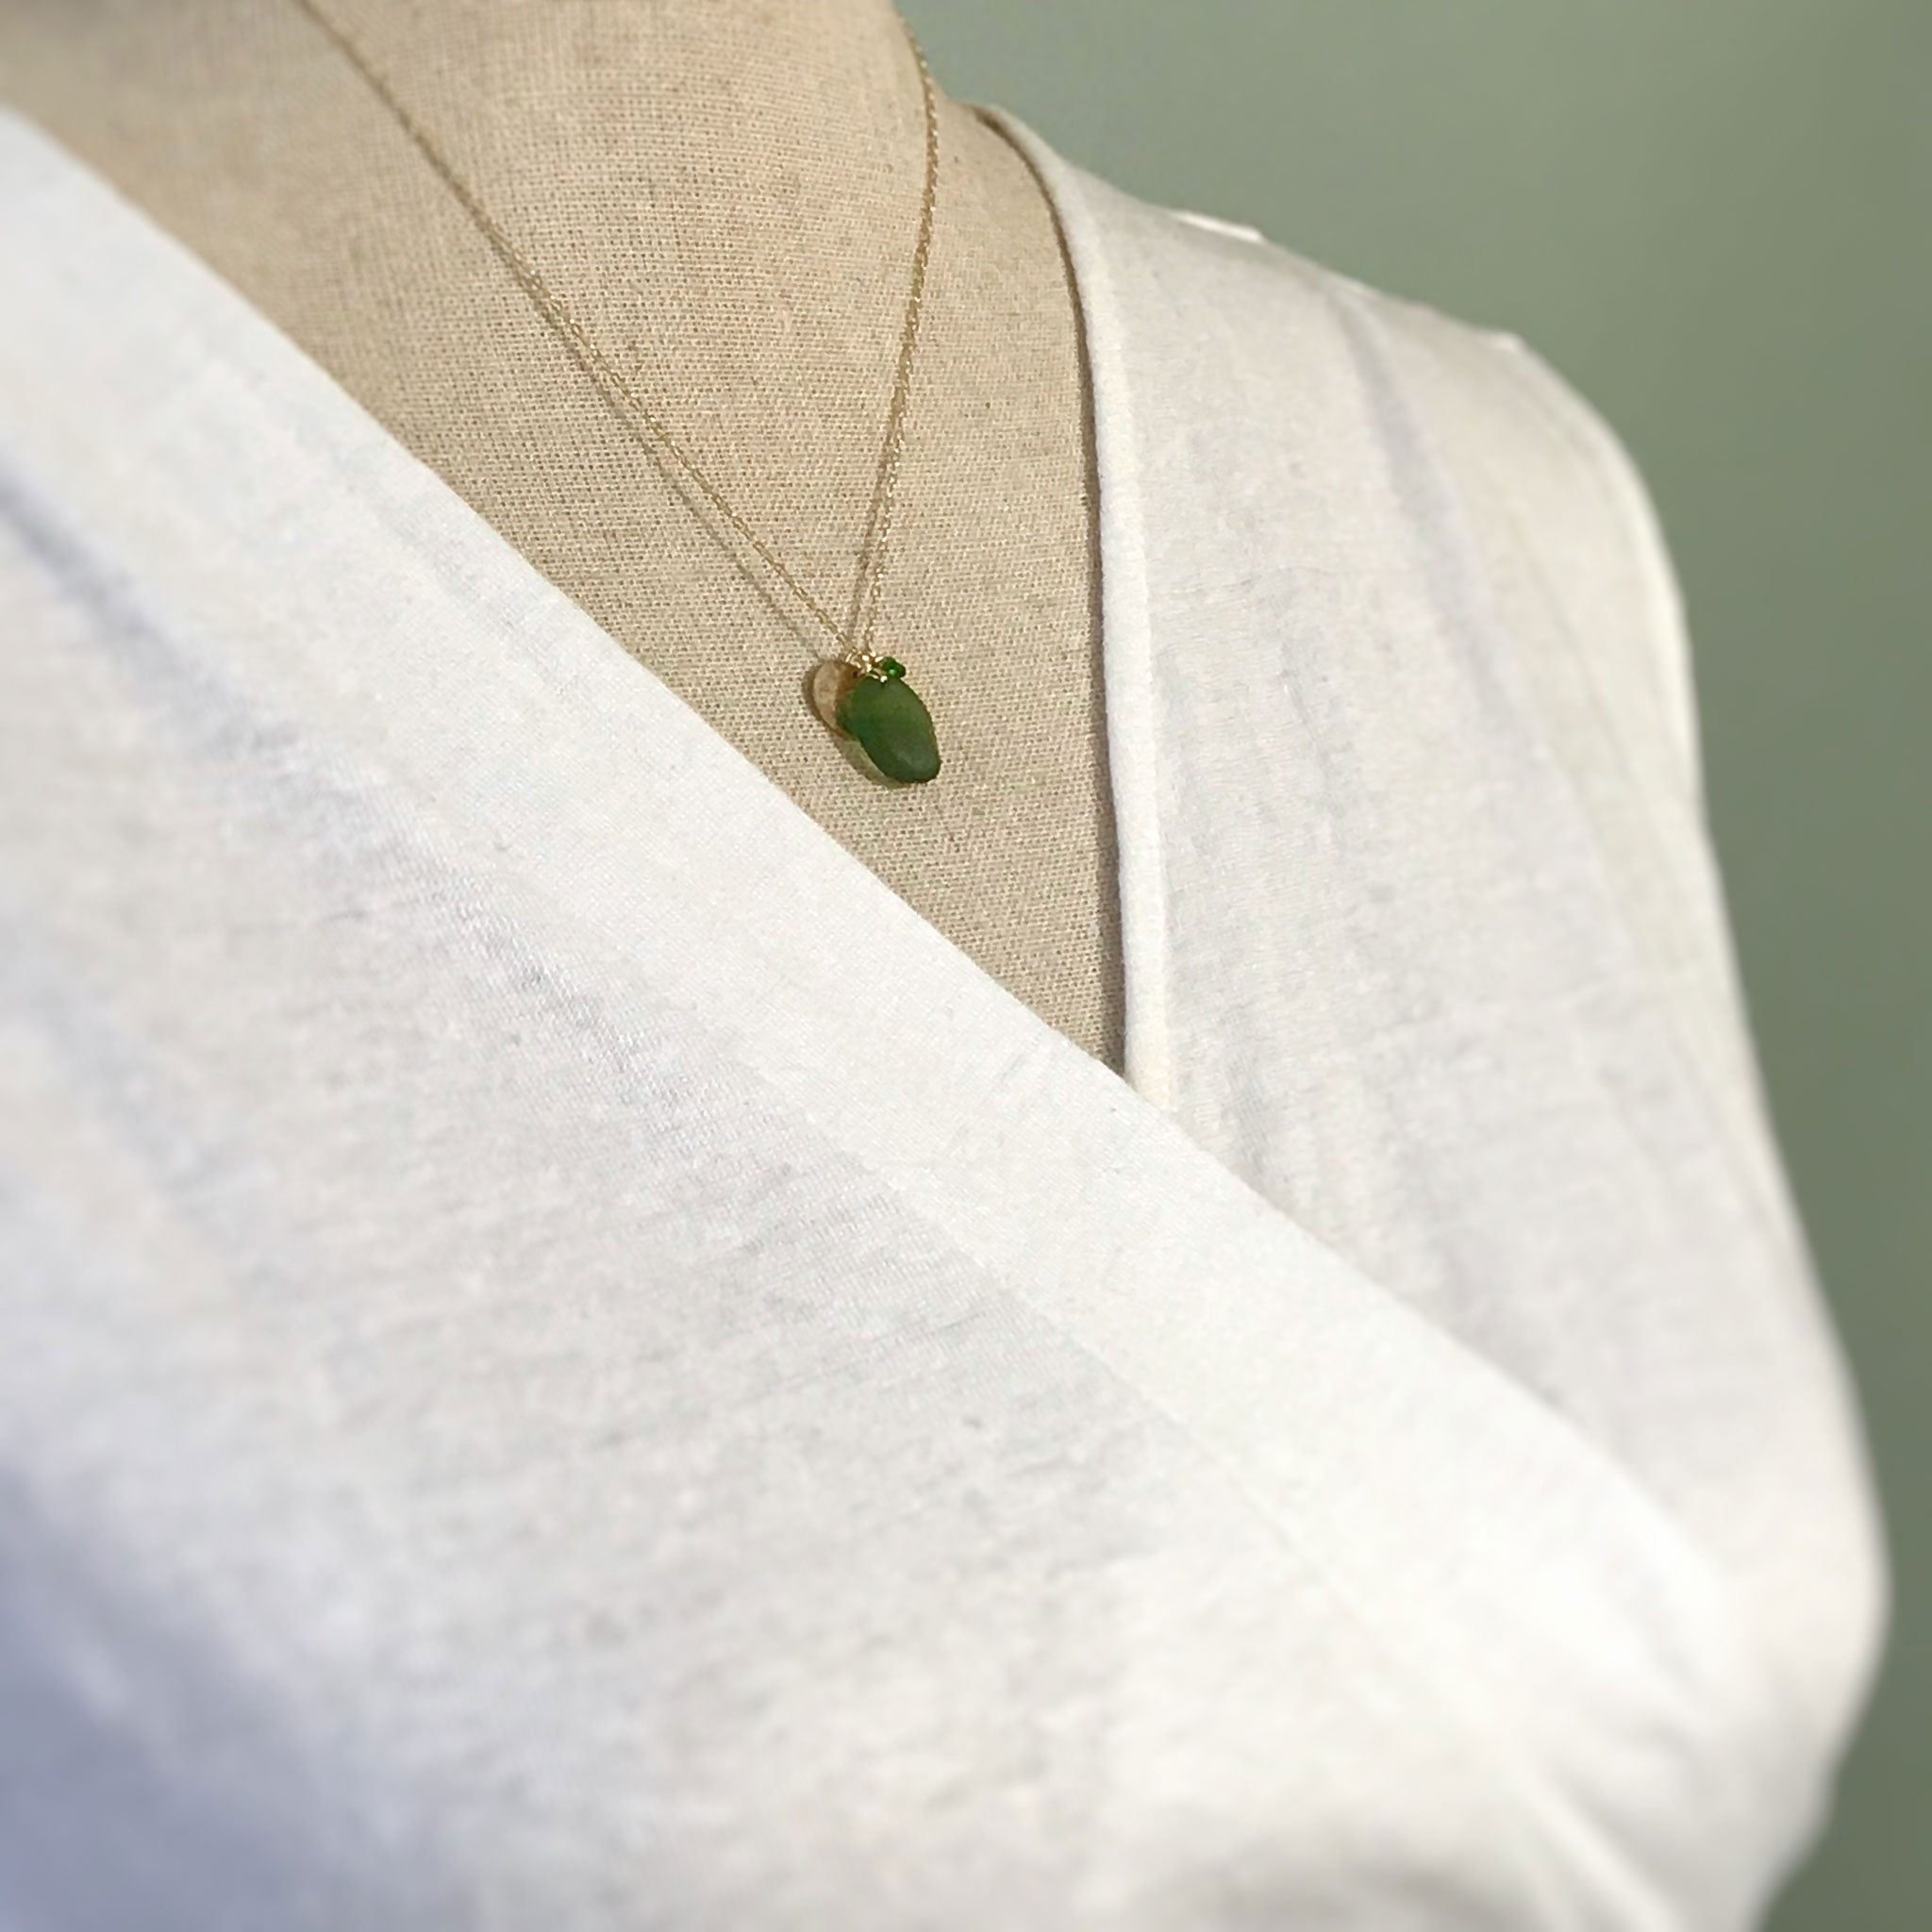 green and gold necklace seaglass with gold disc and tsavorite stones kriket broadhurst jewellery